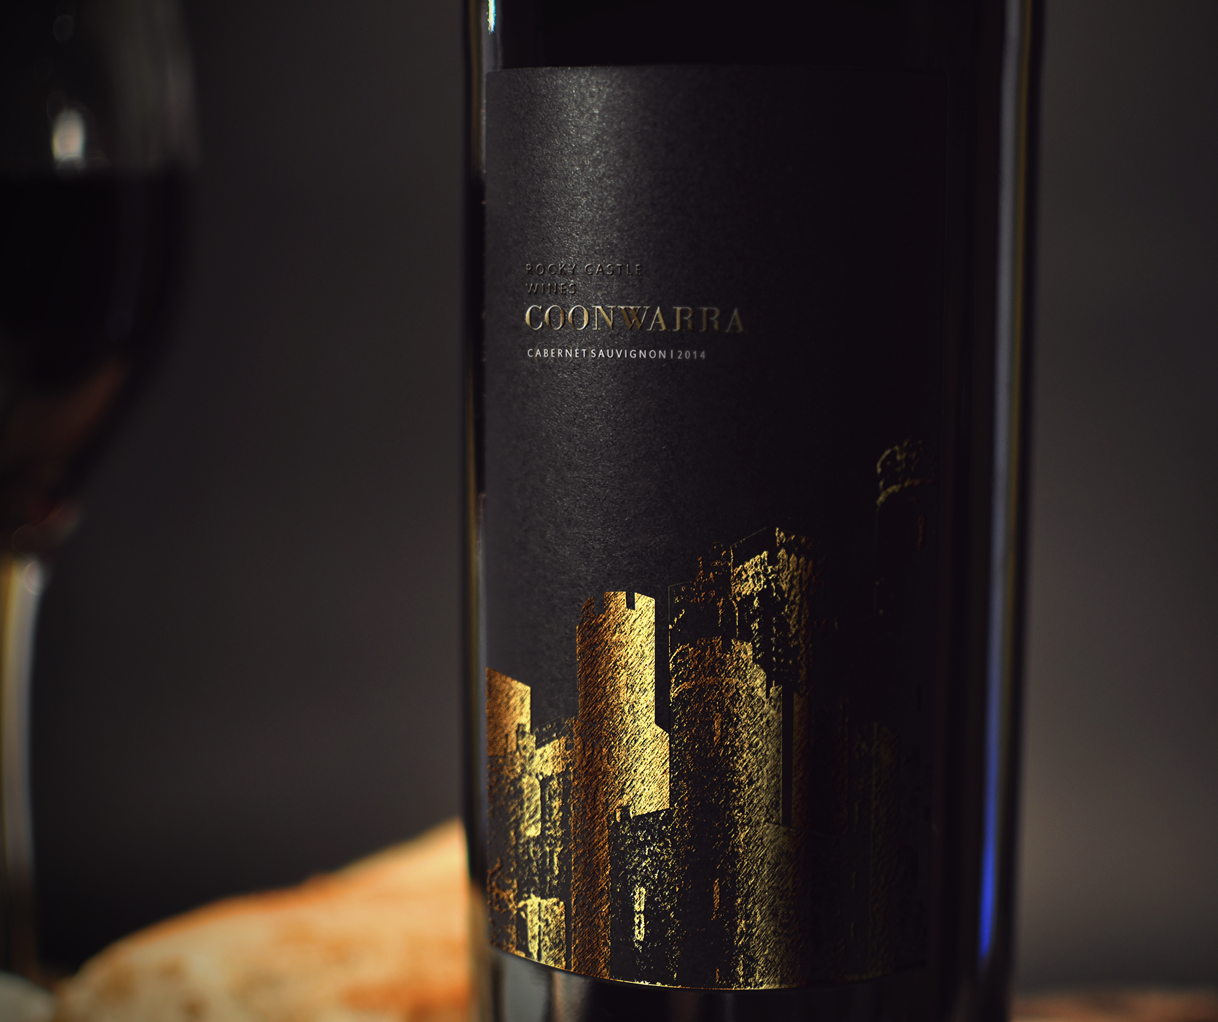 Modern black and gold wine label